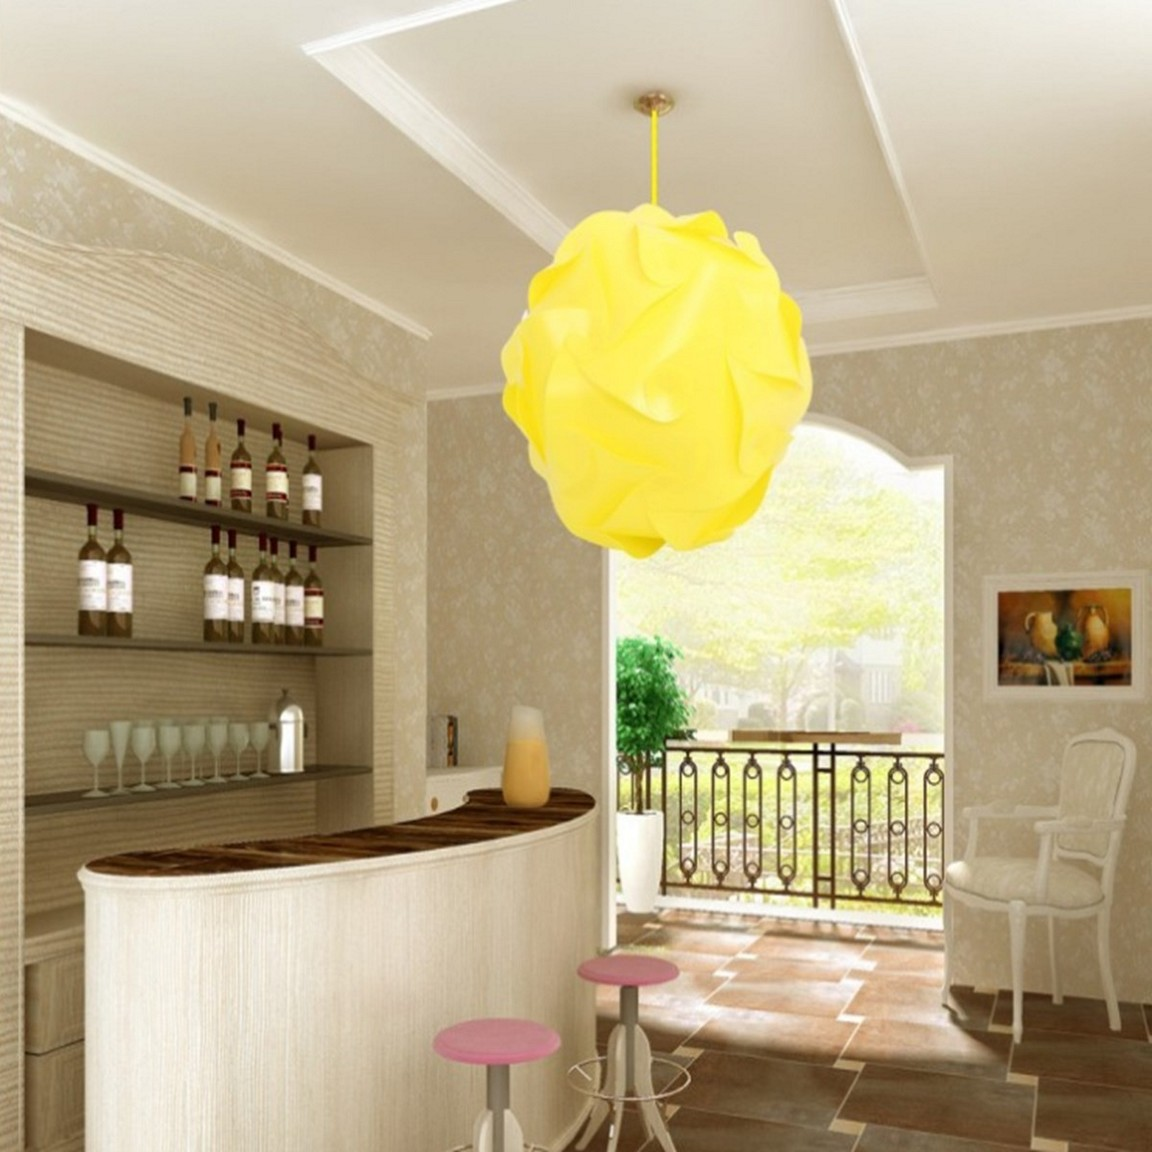 Yellow Pendant Light Shades Completing Old Fashioned Bar with High Bar Counter and Round Stools